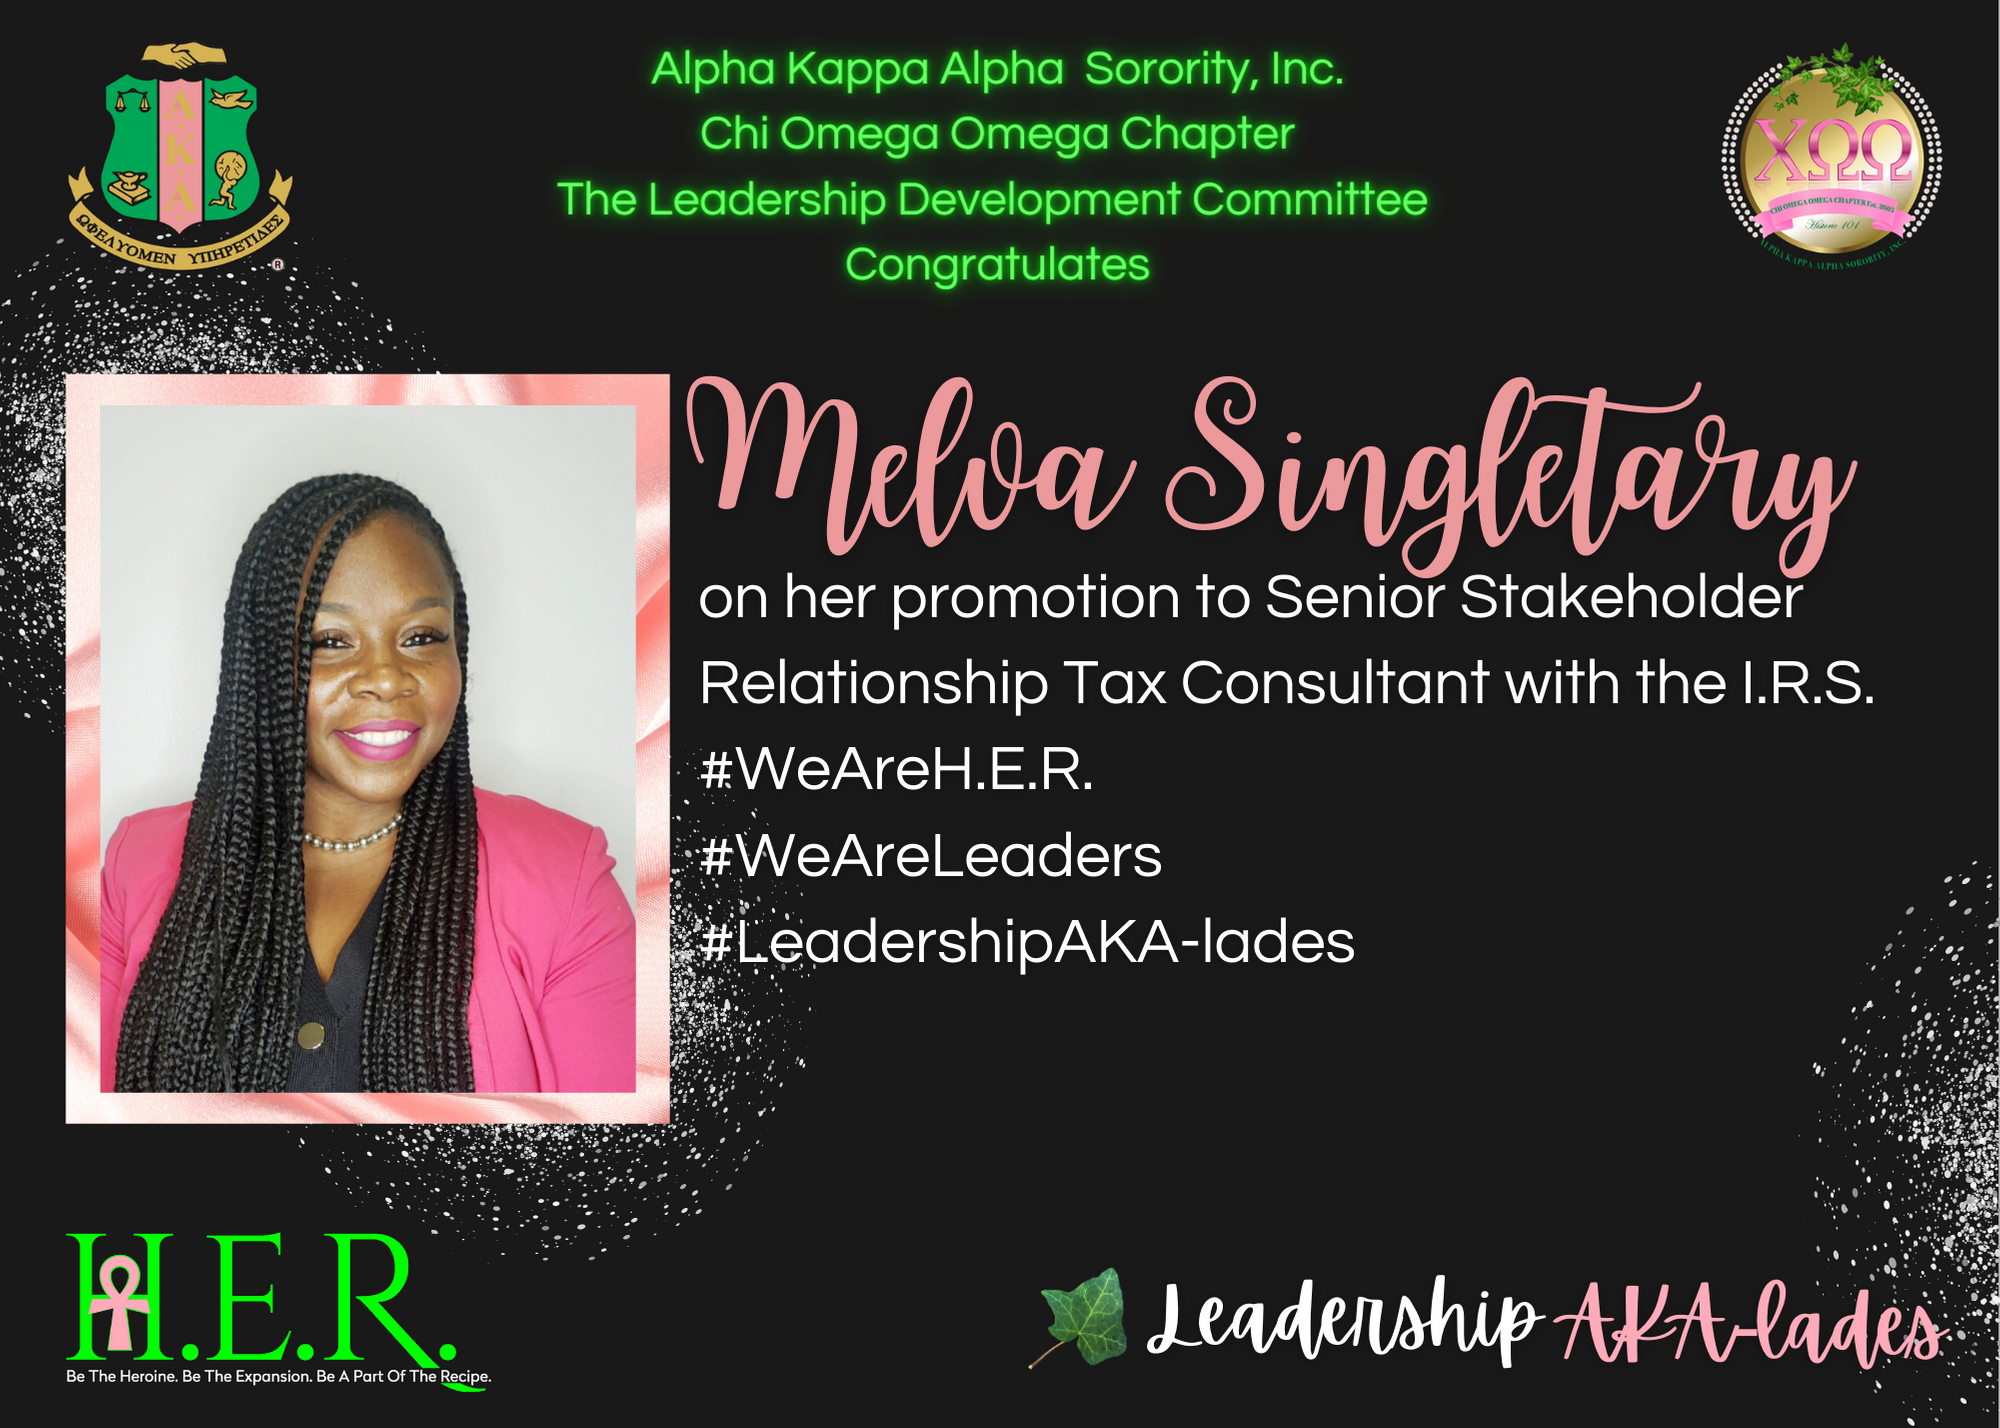 M. Singletary Leadership AKA-lades Template